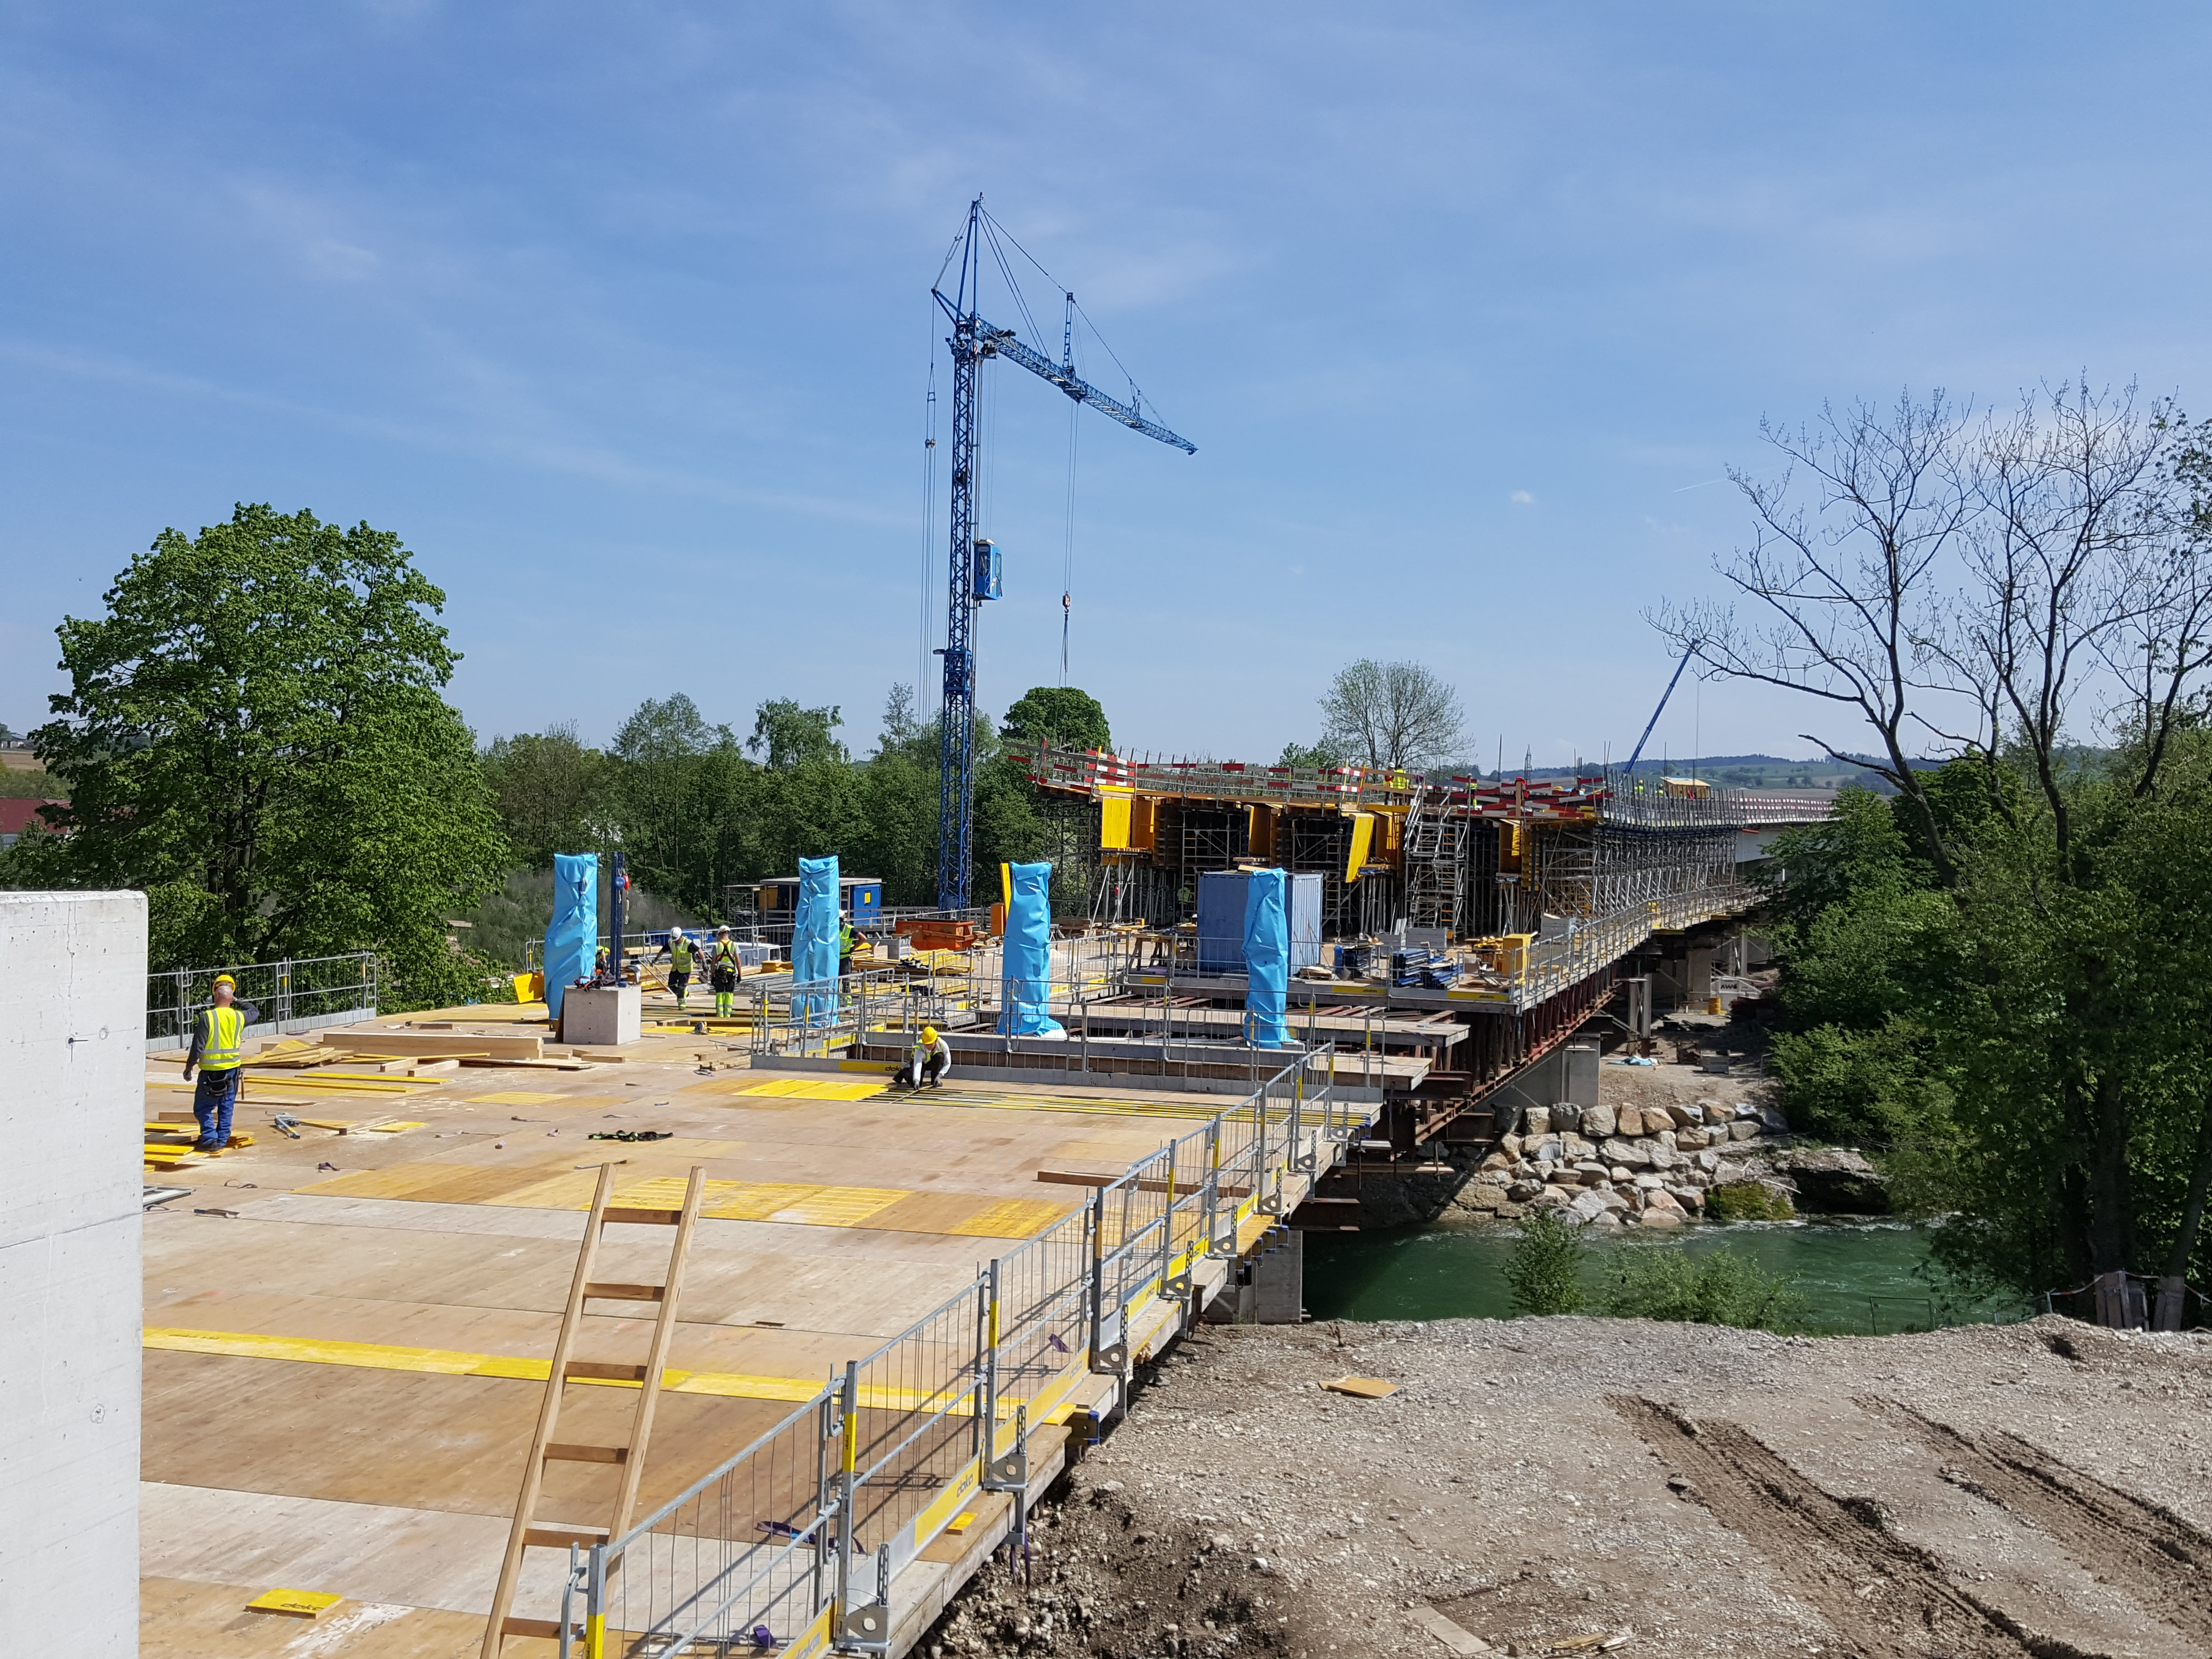 Brückenbau, Wieselburg - Road and bridge construction